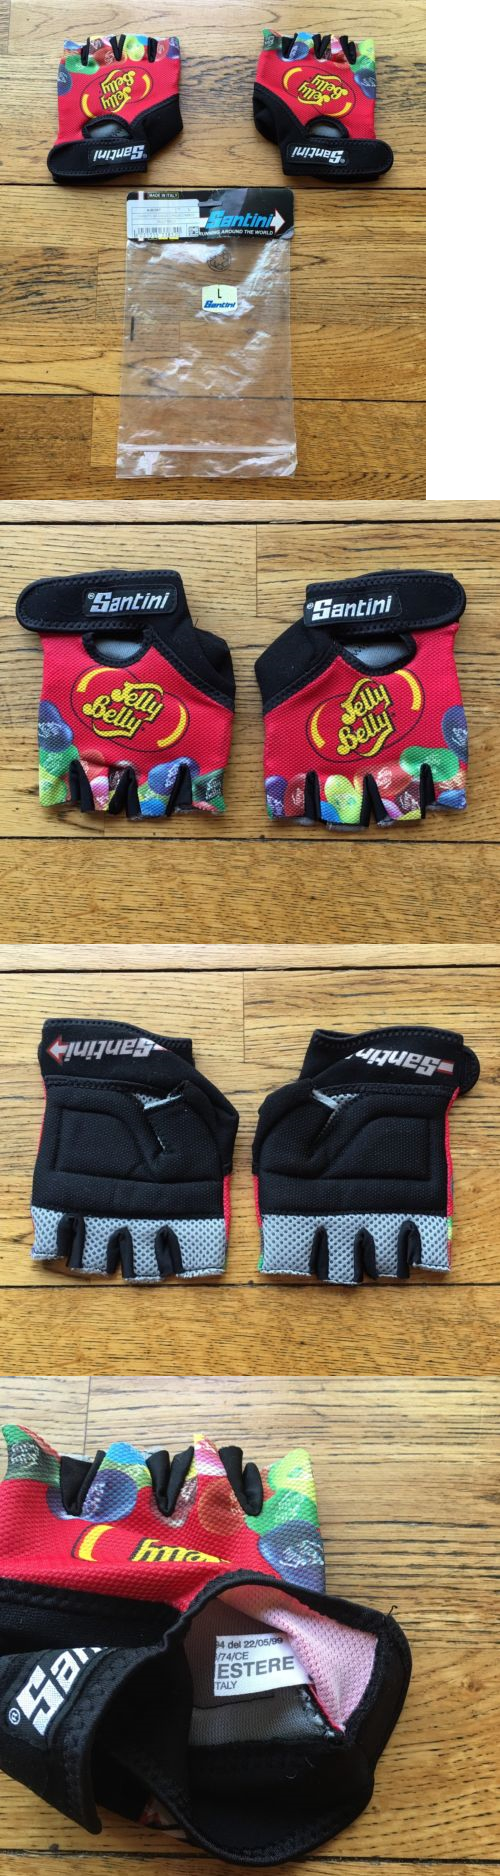 Gloves vintage santini team jelly belly cycling gloves